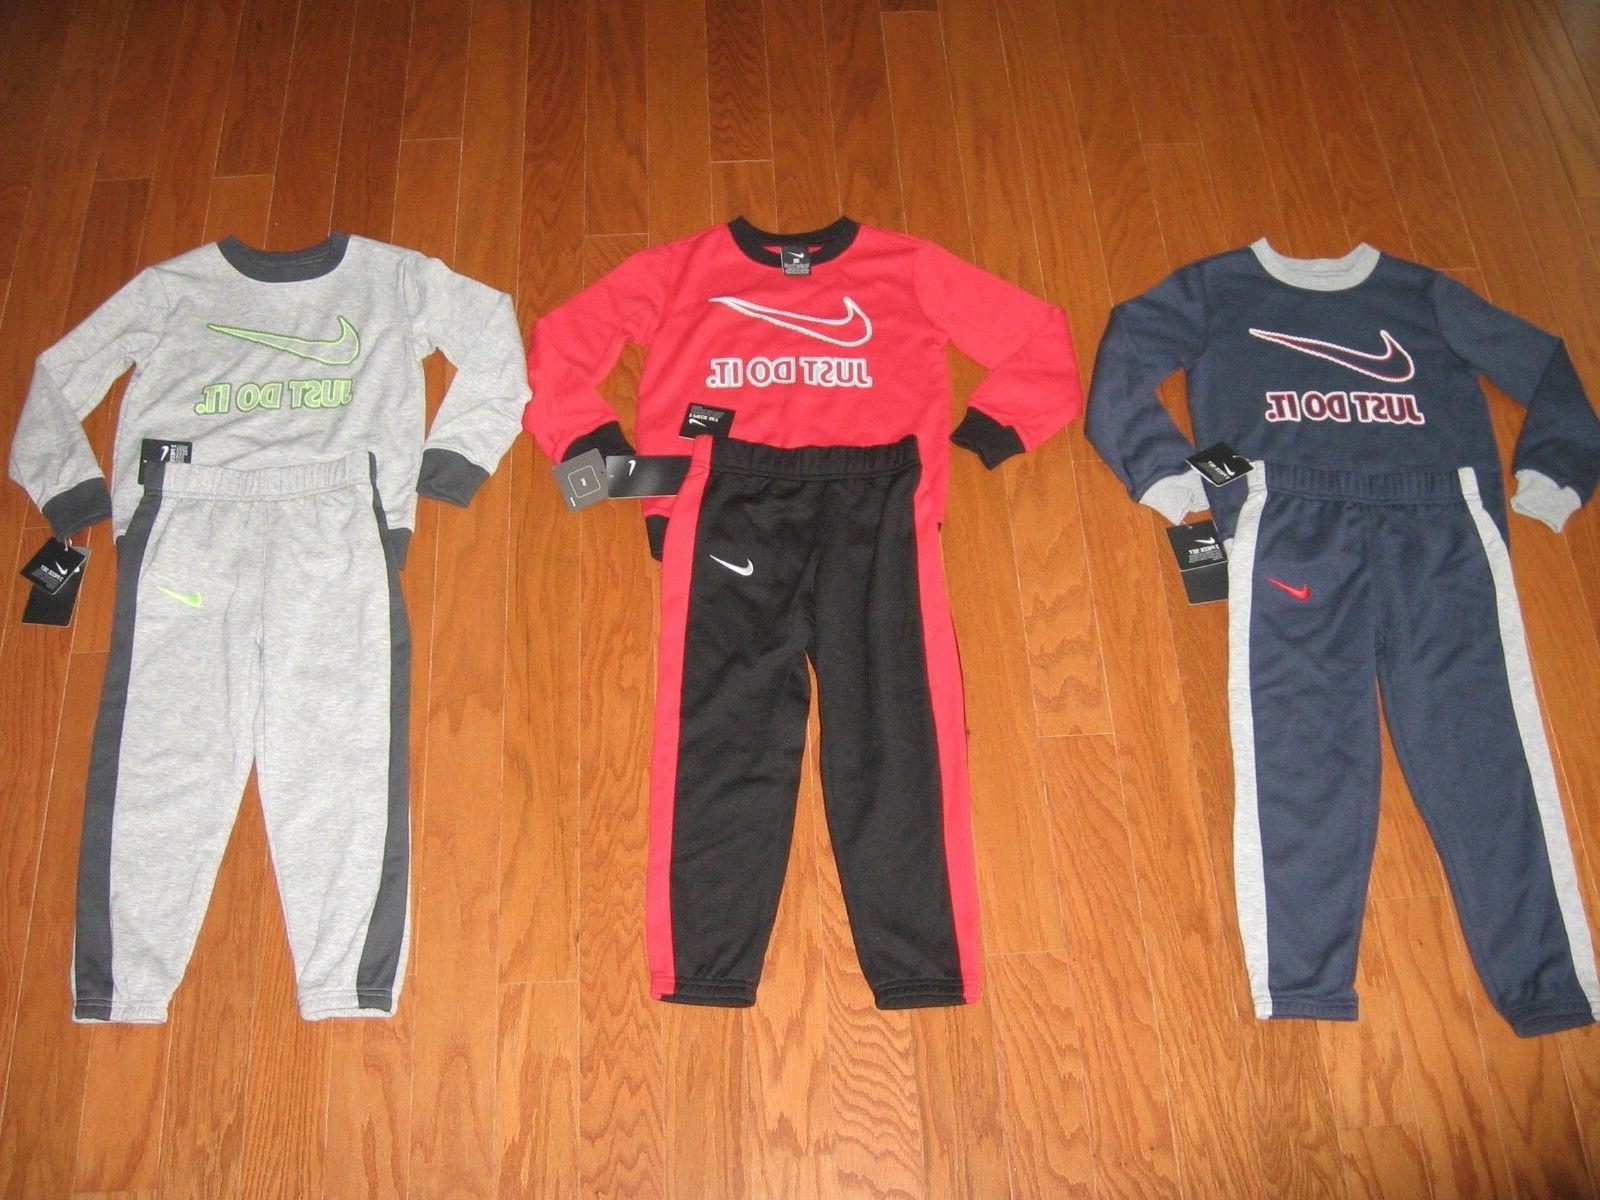 boys 2 pc sweatshirt and pants outfit